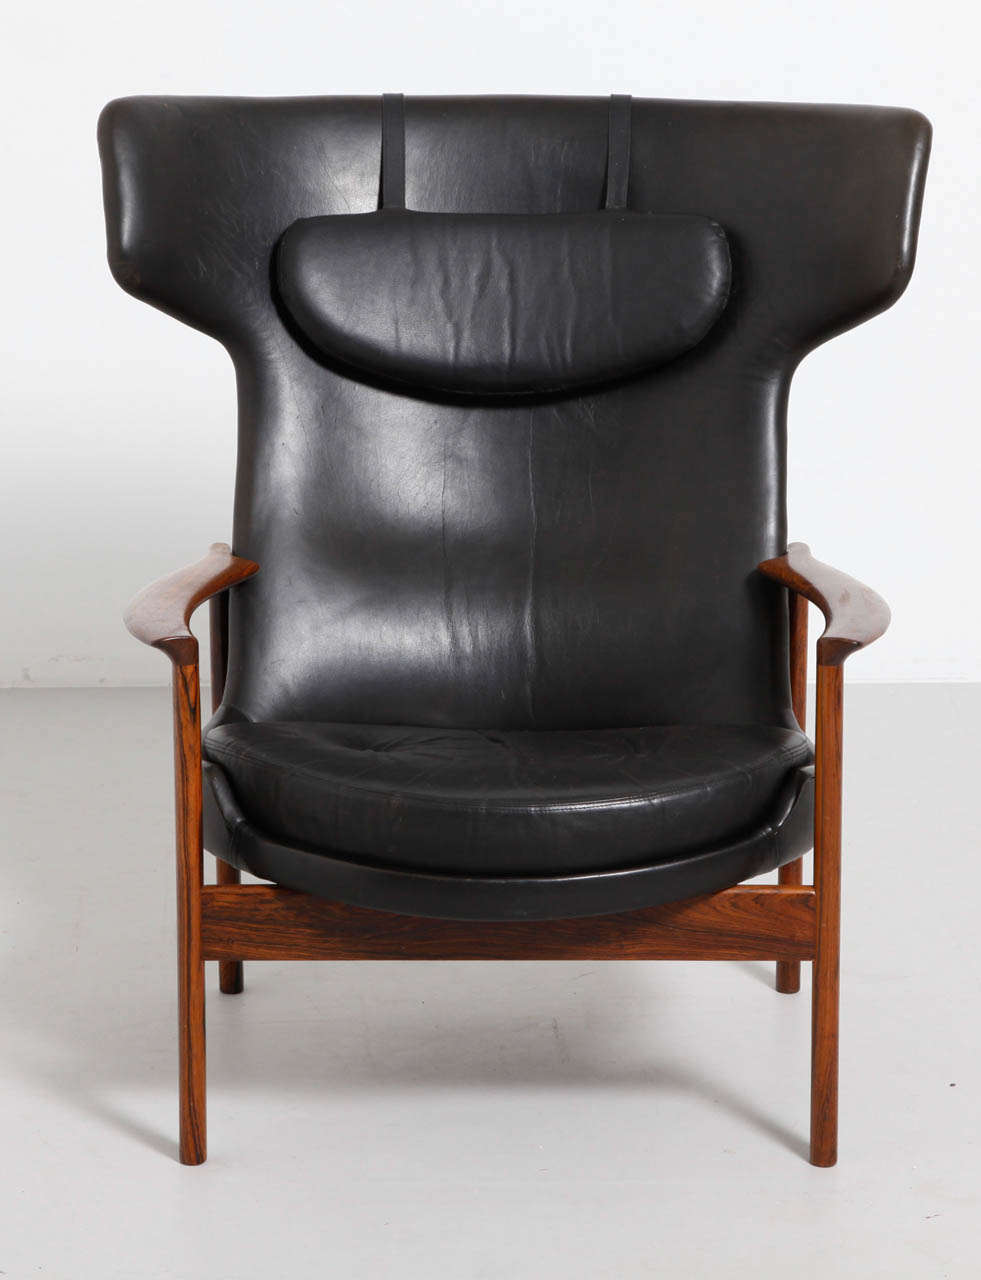 Scandinavian Modern Large Wing Back Lounge Chair Designed By Ib  Kofod Larsen, Denmark For